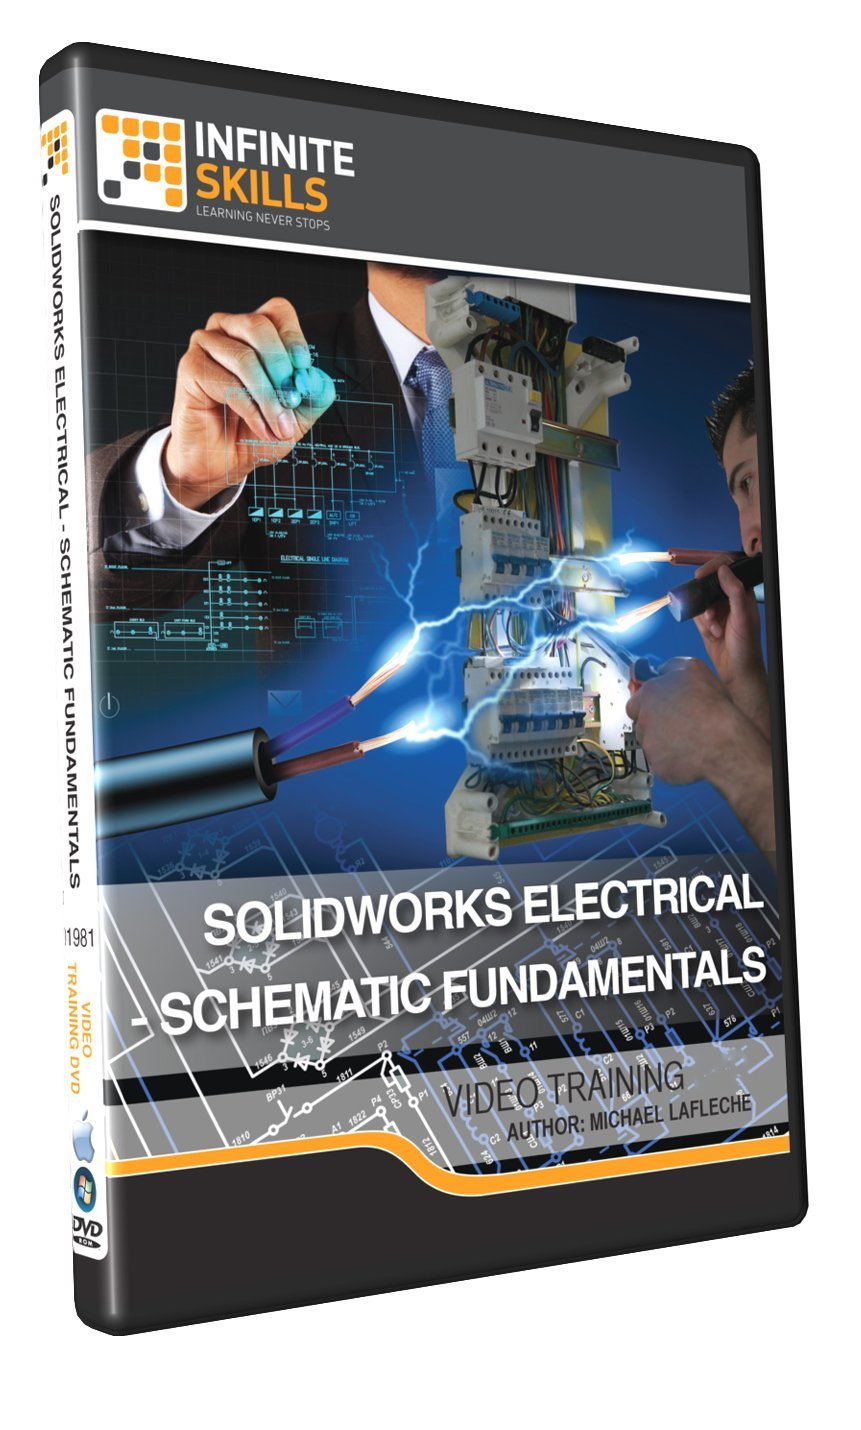 Amazon Solidworks Electrical Schematic Fundamentals